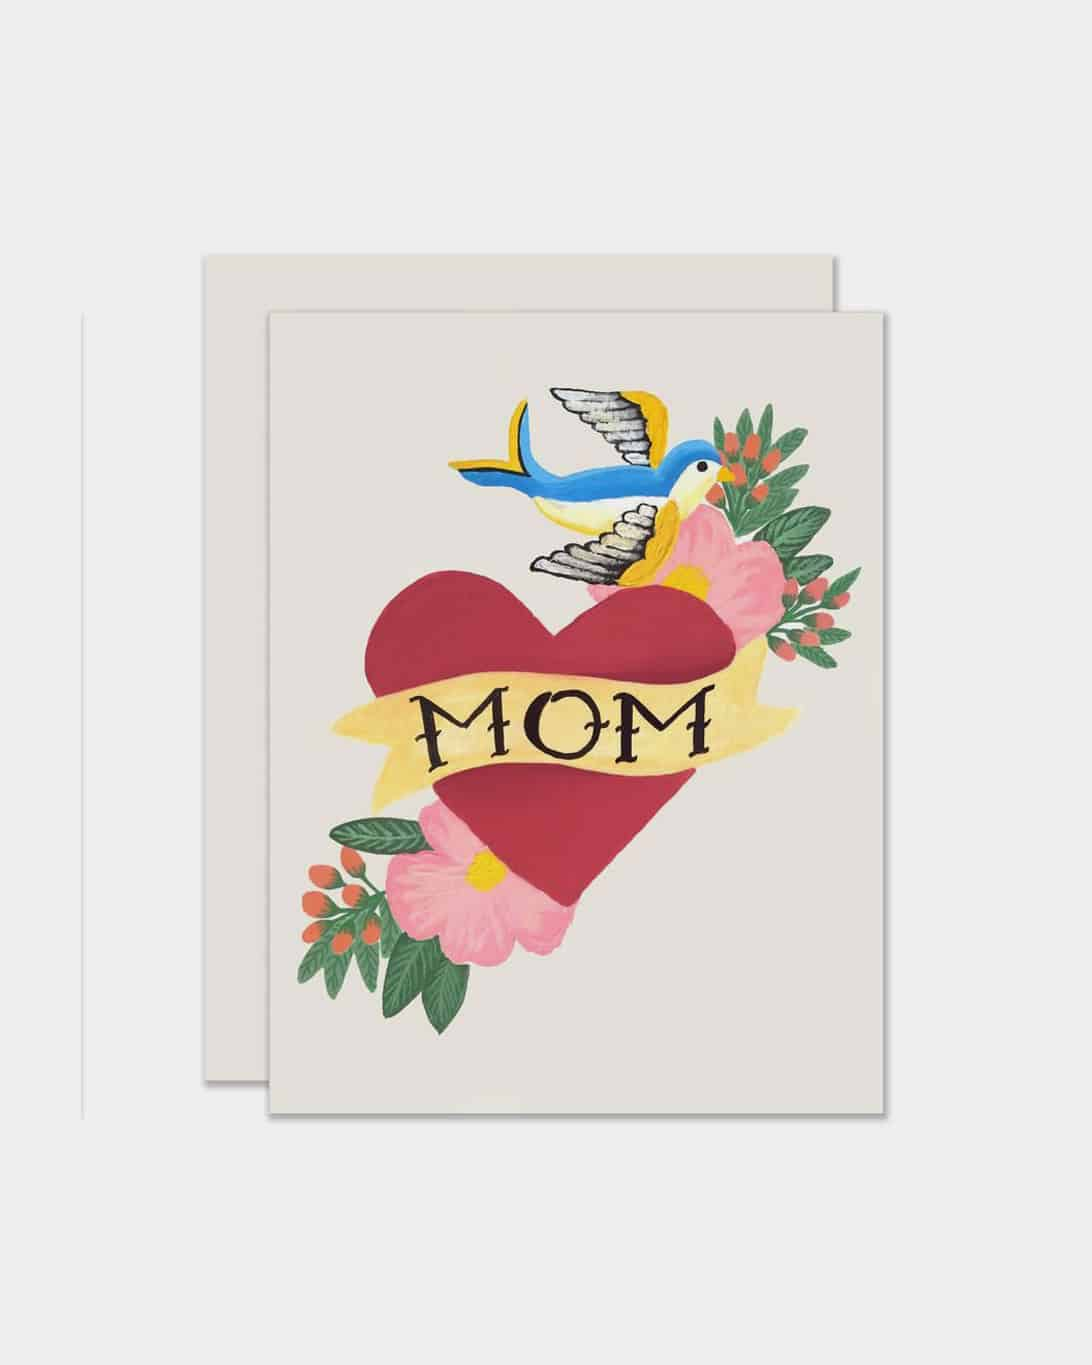 White card that says 'mom' in a heart